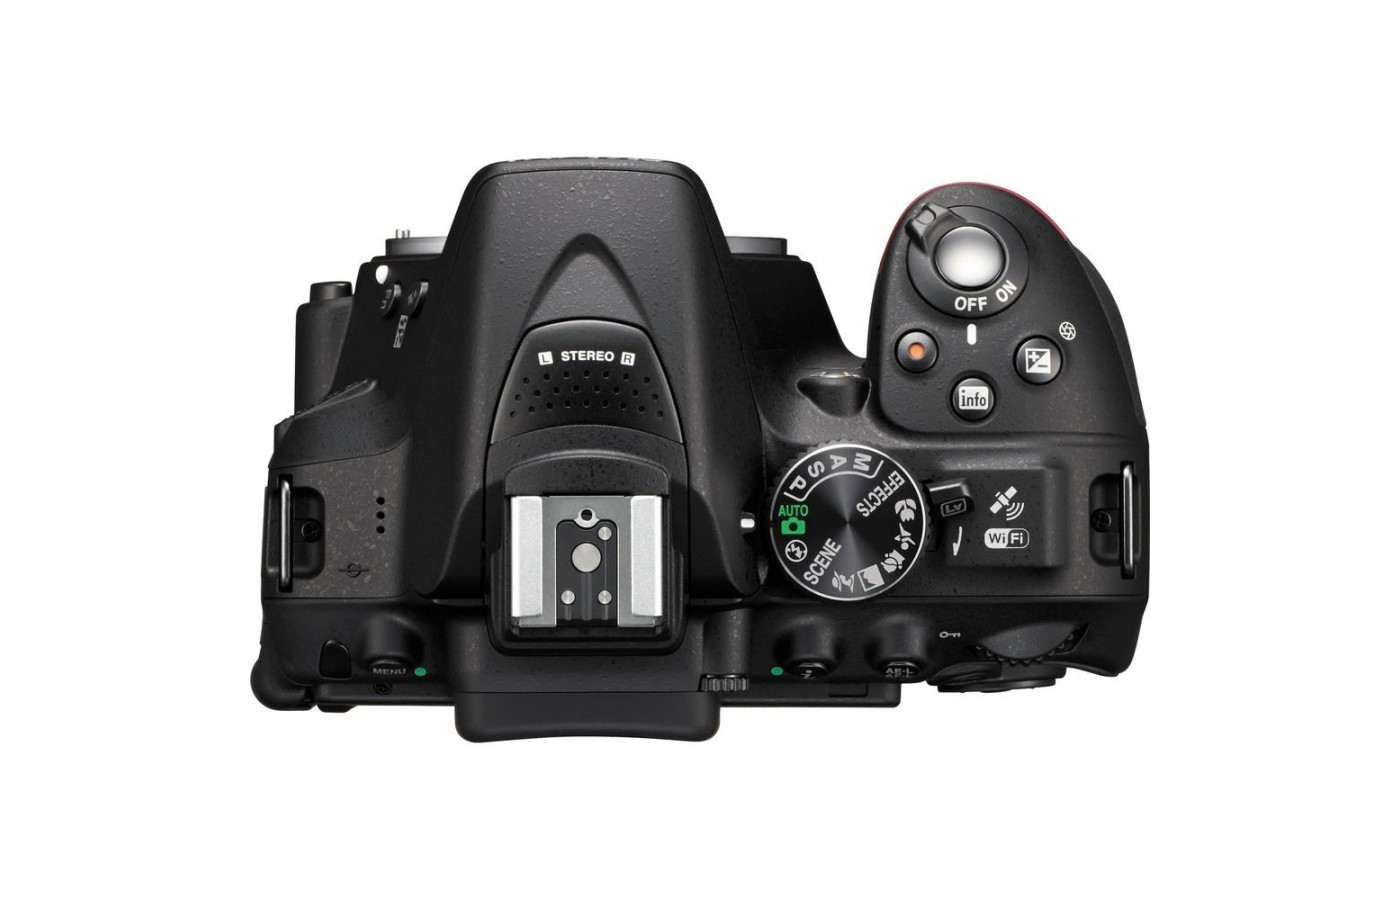 The exposure compensation, info, and record buttons are behind the power switch and shutter button combination.